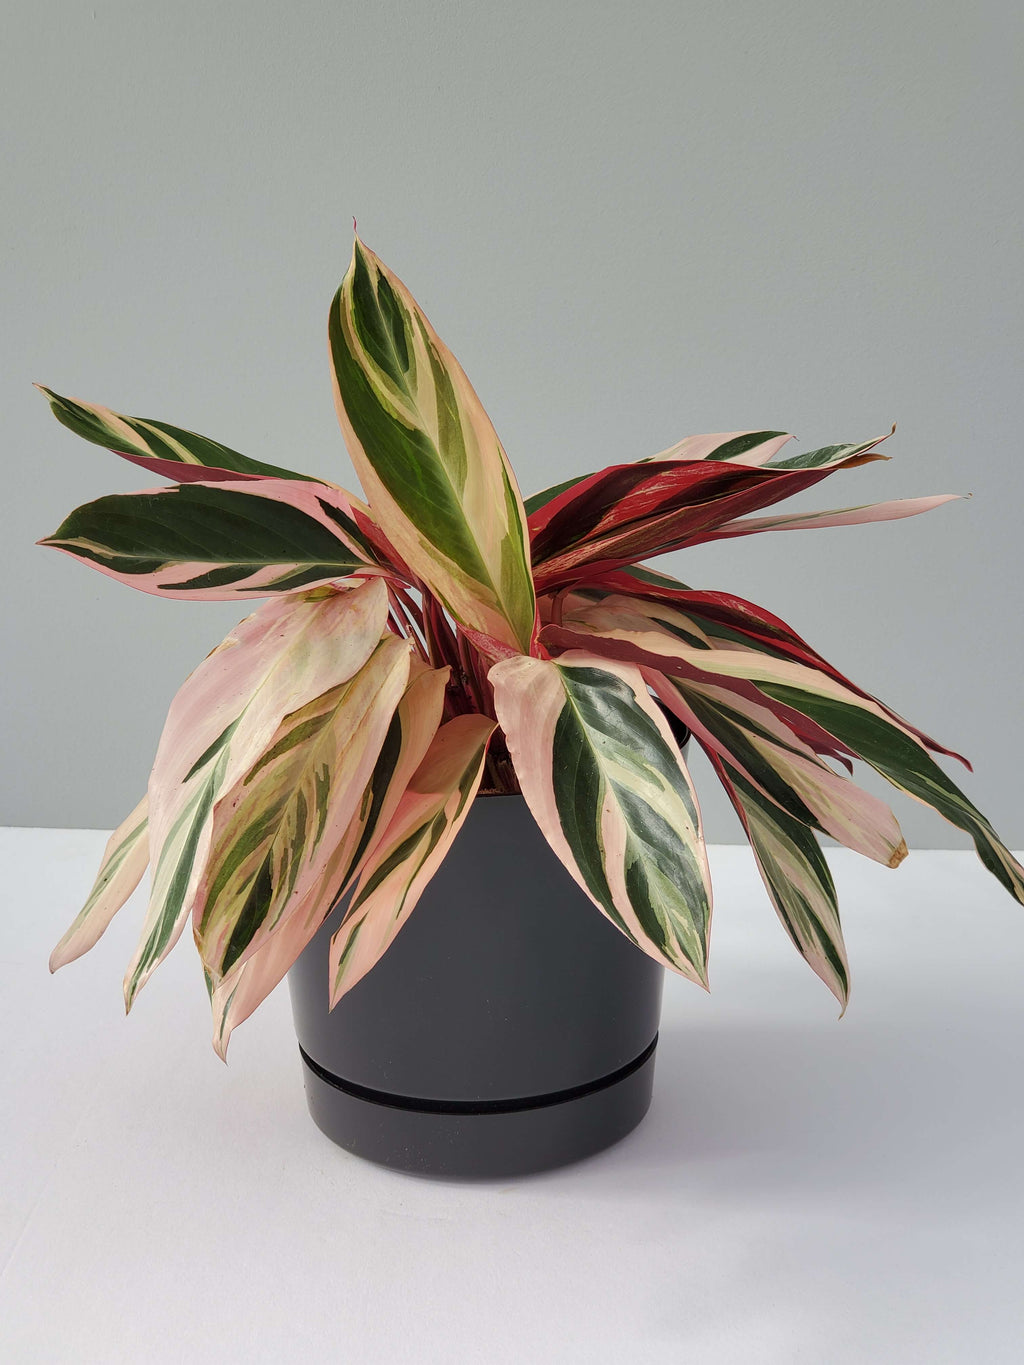 Tricolor Prayer Plant